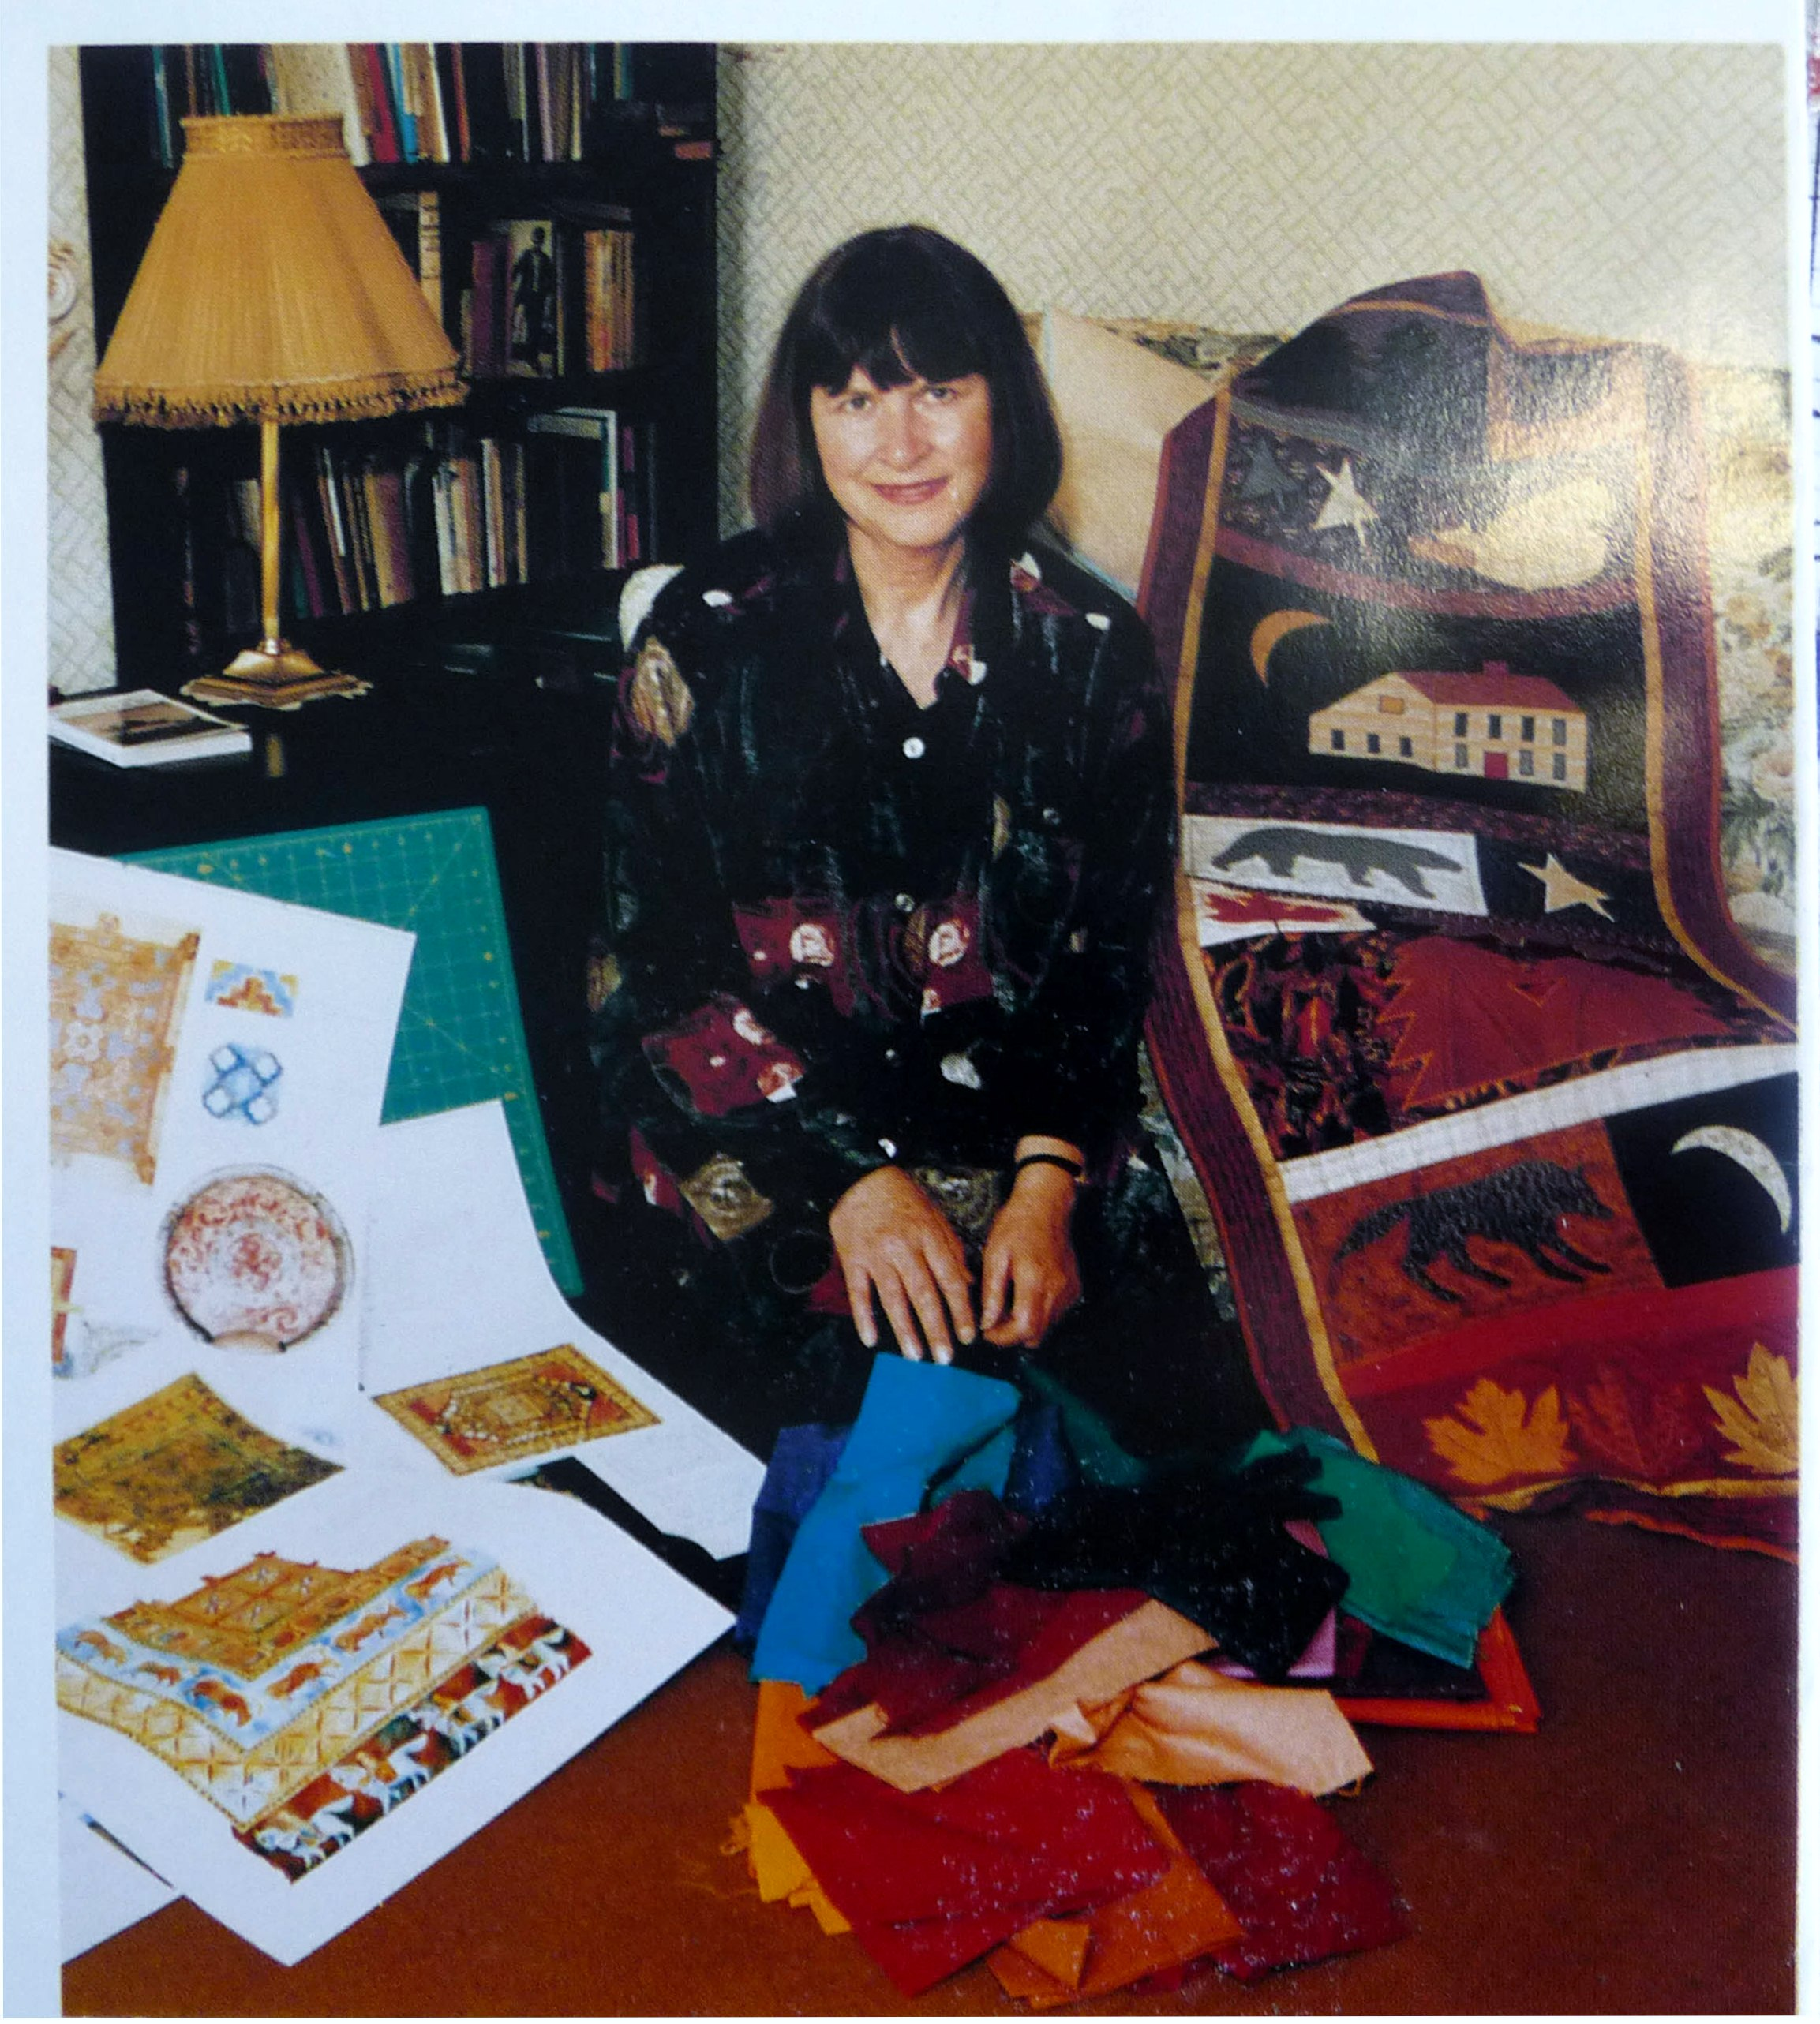 1995 magazine picture showing Norma Heron with some of her work